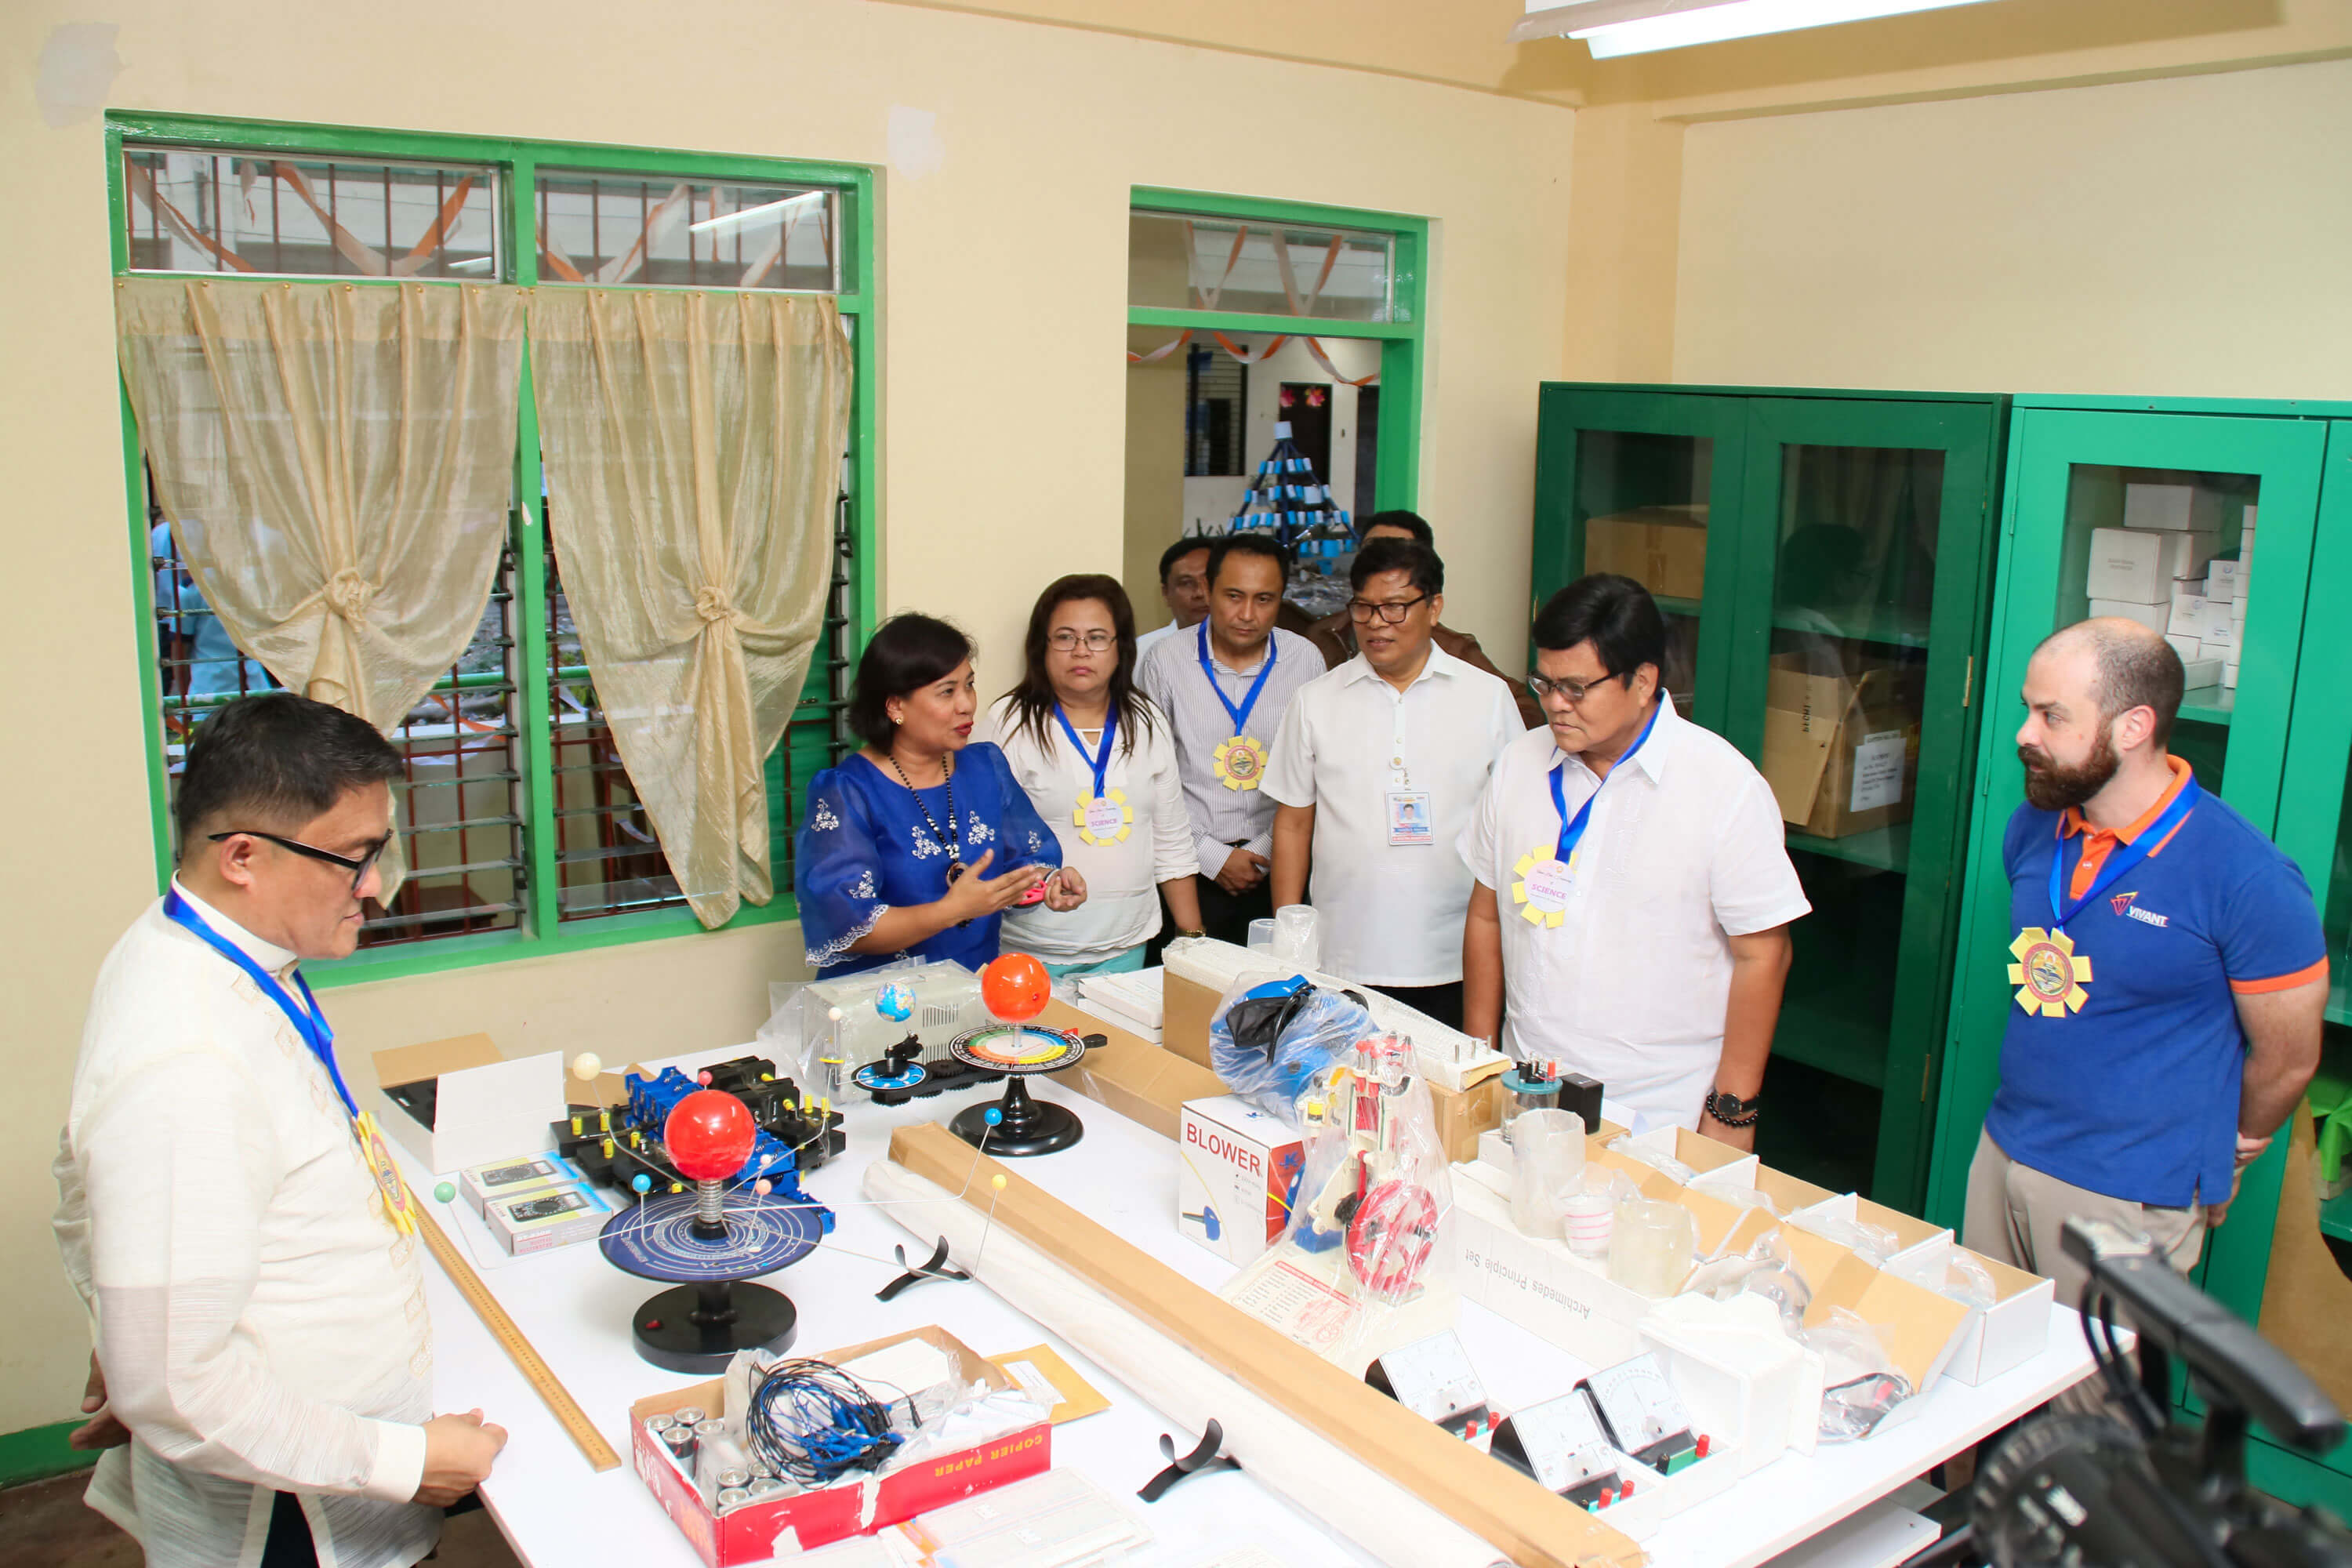 EMPOWERING THE YOUTH. Cebu City Mayor Edgardo Labella (2nd from right) and Mabolo National High School principal (2nd from left) thank Vivant Foundation, represented by its executive director Shem Garcia (right), for donating various science laboratory tools and equipment to the school. During the turnover last Aug. 19, Mayor Labella and Department of Education officials saw the donation, which aims to improve the teaching of science, technology, engineering and math (STEM). Also present during the turnover were Bianito Dagatan, Department of Education Cebu City Division superintendent, and lawyer Jess Garcia (4th from right) of Vivant Corporation.